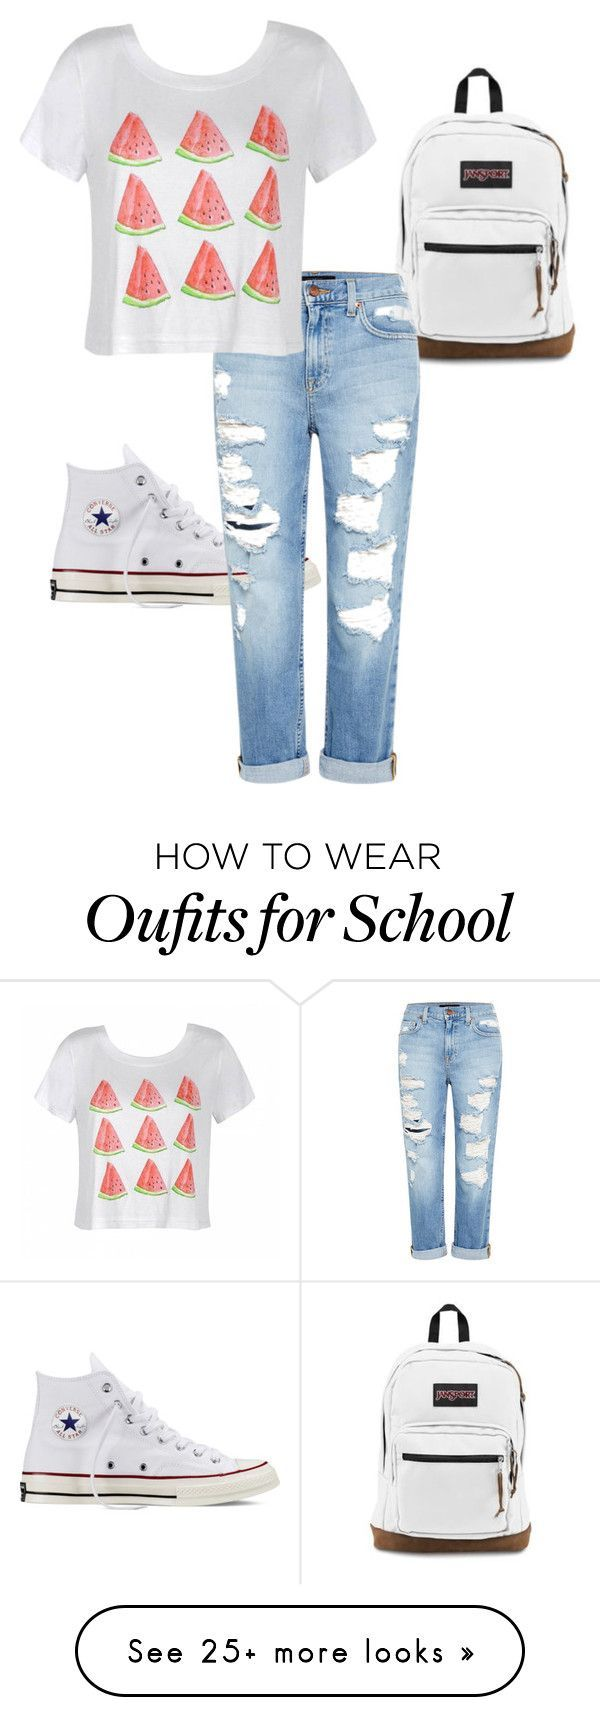 """School"" by sarahhotten-1 on Polyvore featuring Converse, JanSport, Genetic Deni..."